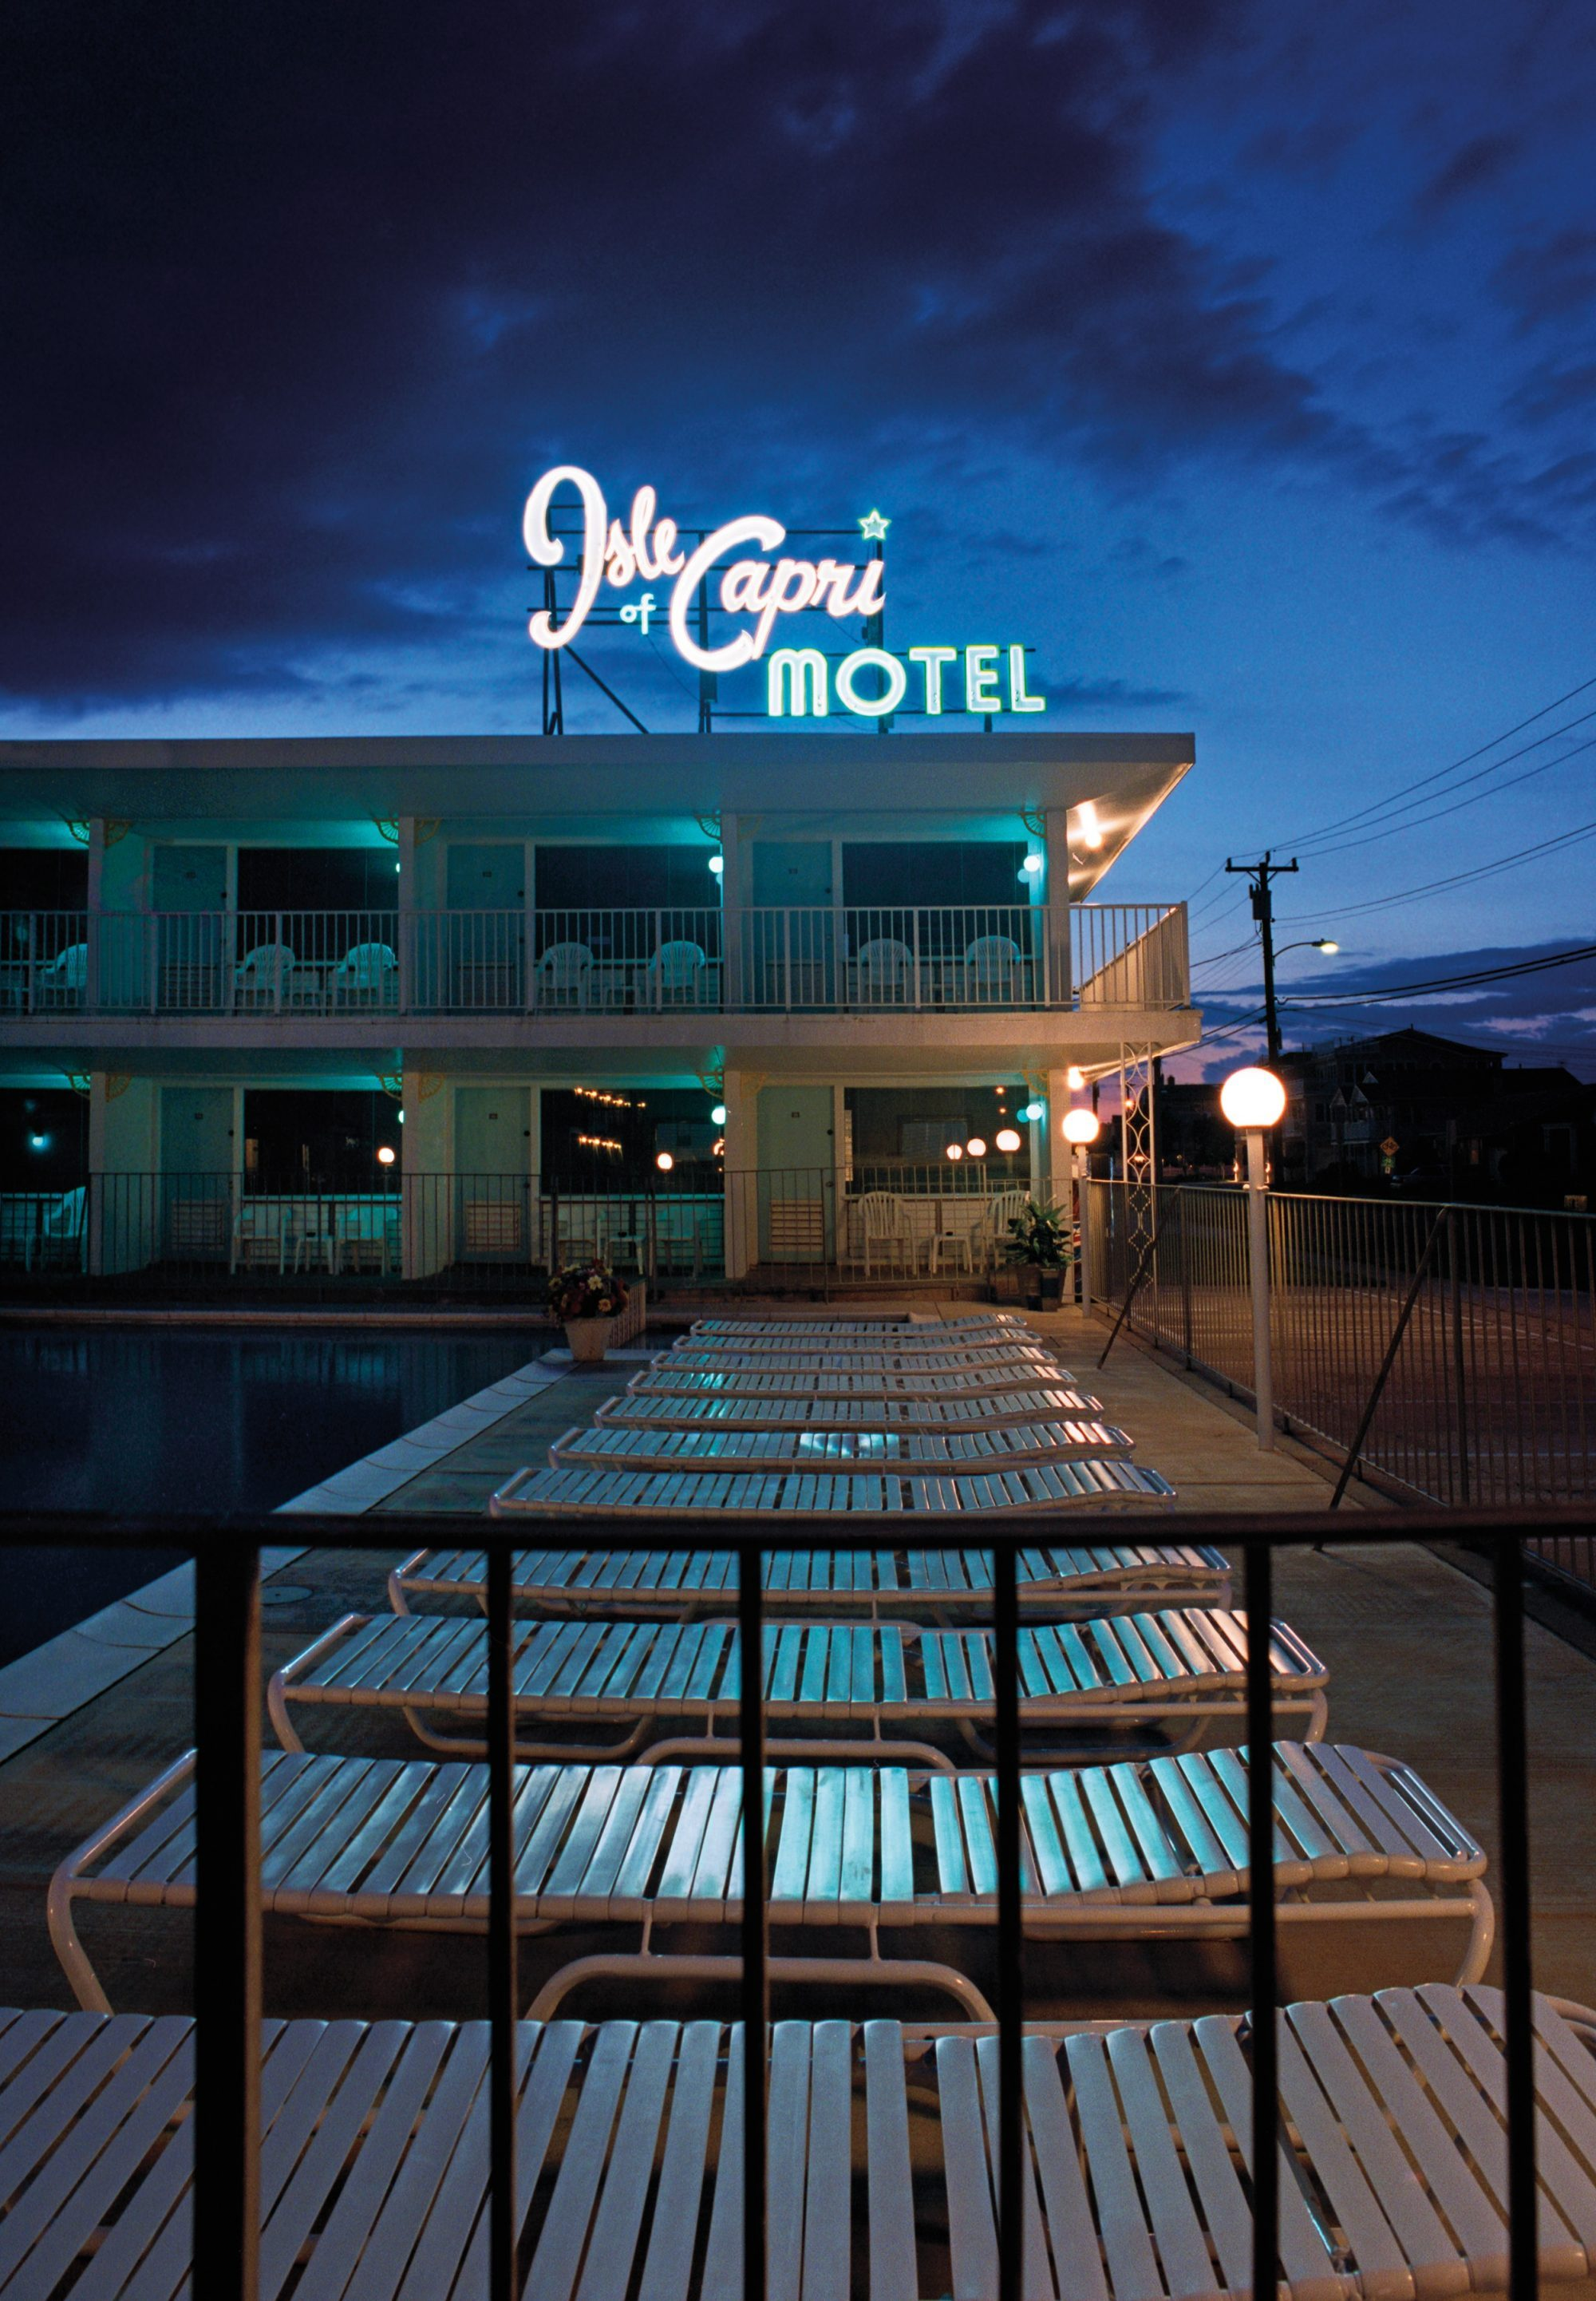 Roadside motels in the US are seeing a revival